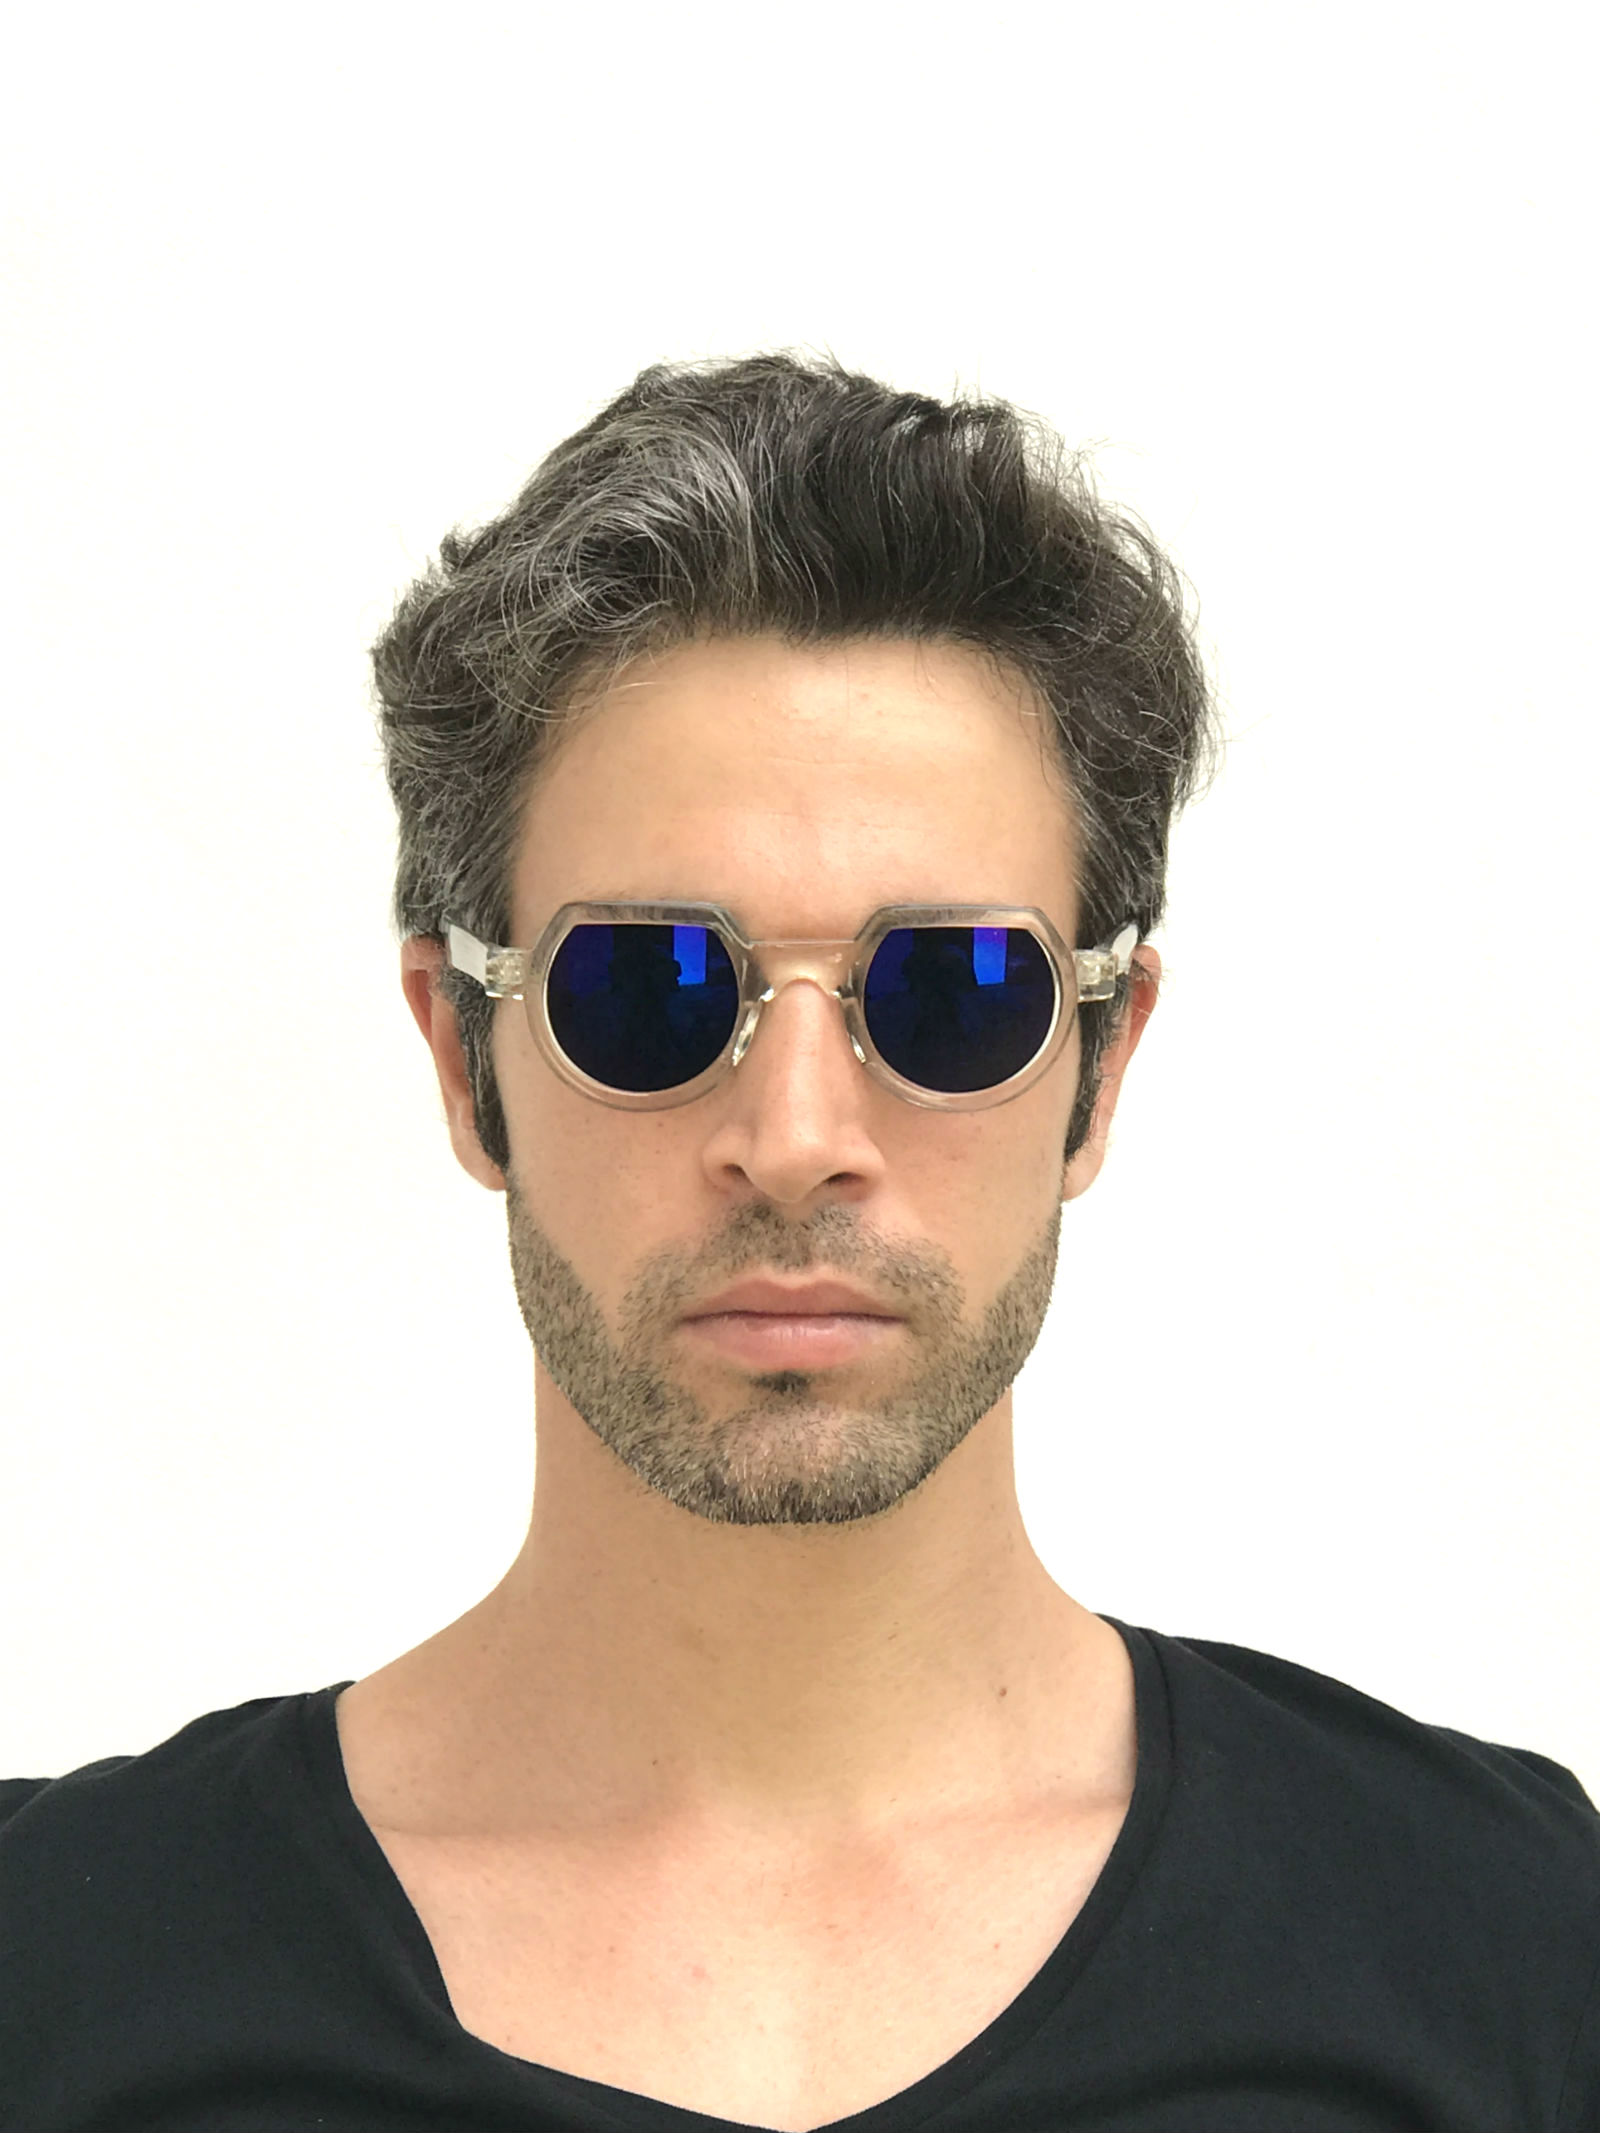 vintage round sunglasses clear with blue mirror lens HT-010